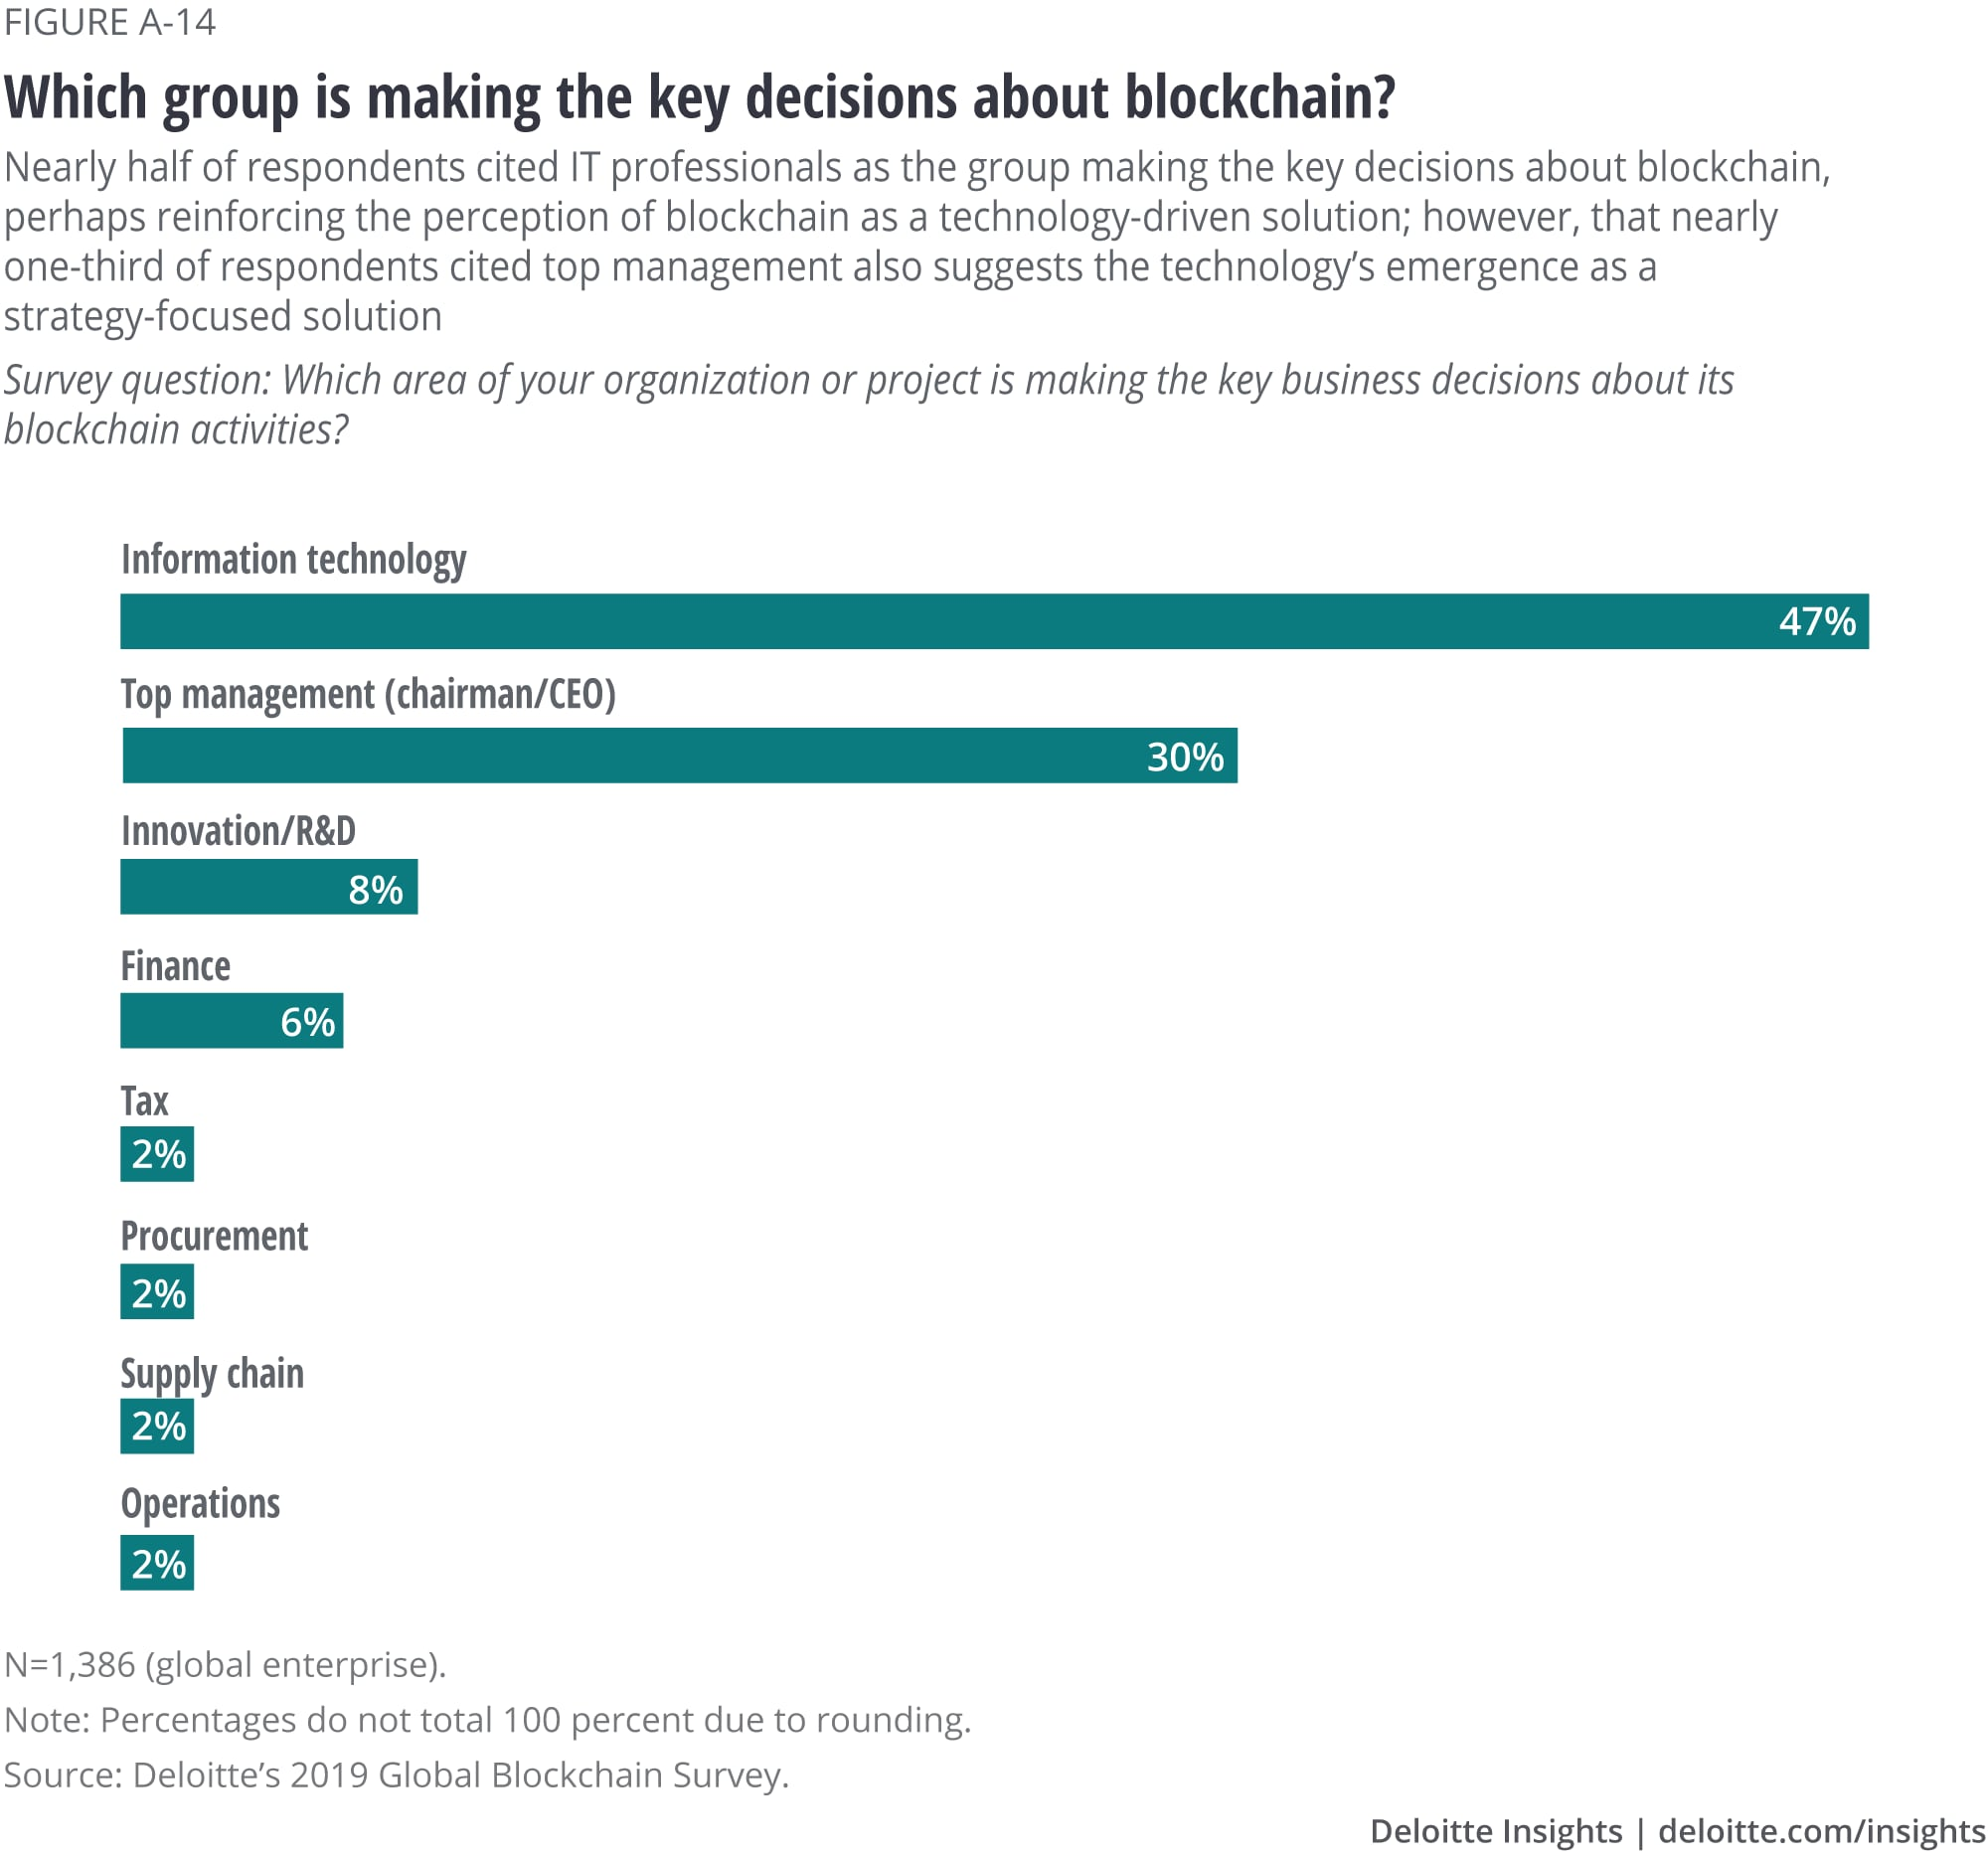 Which group is making the key decisions about blockchain?